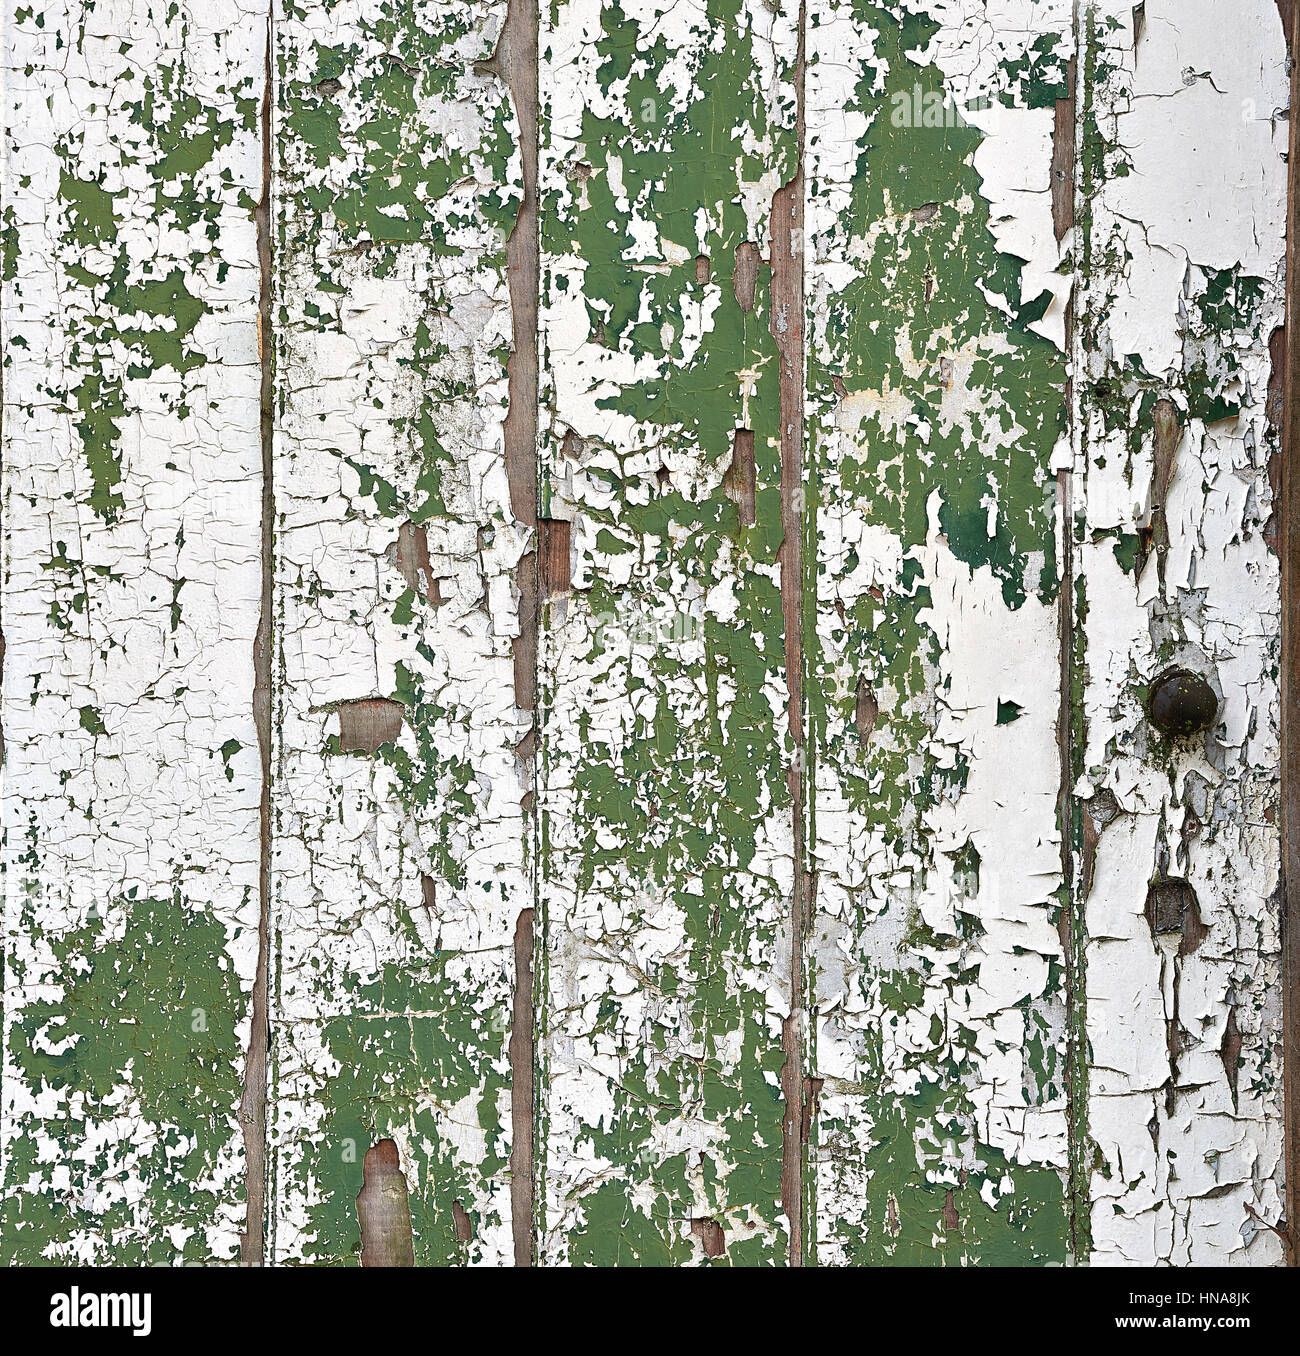 Weathered and peeling paint on a old timber door - Stock Image